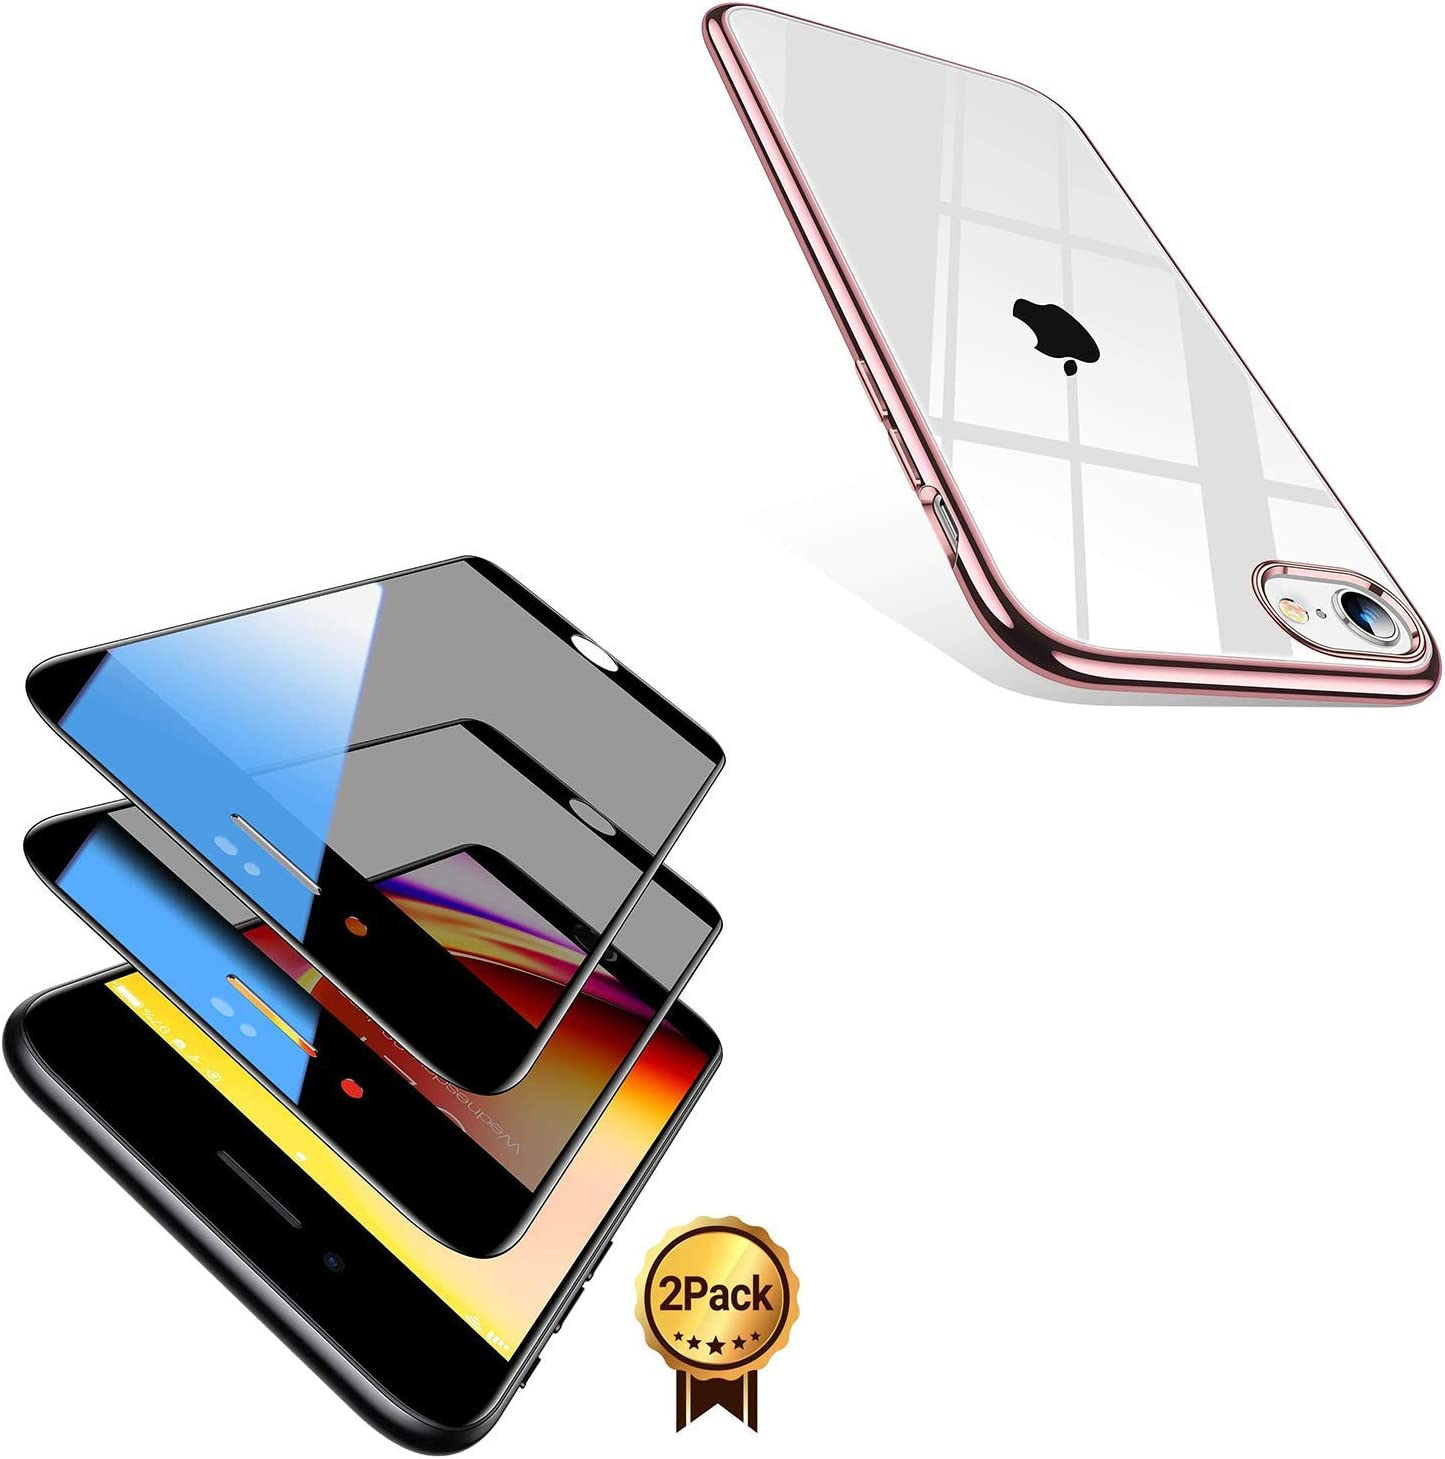 TORRAS Crystal Clear Compatible with iPhone SE 2020 Case & TORRAS Black Diamond Compatible with iPhone SE 2020 Privacy Screen Protector